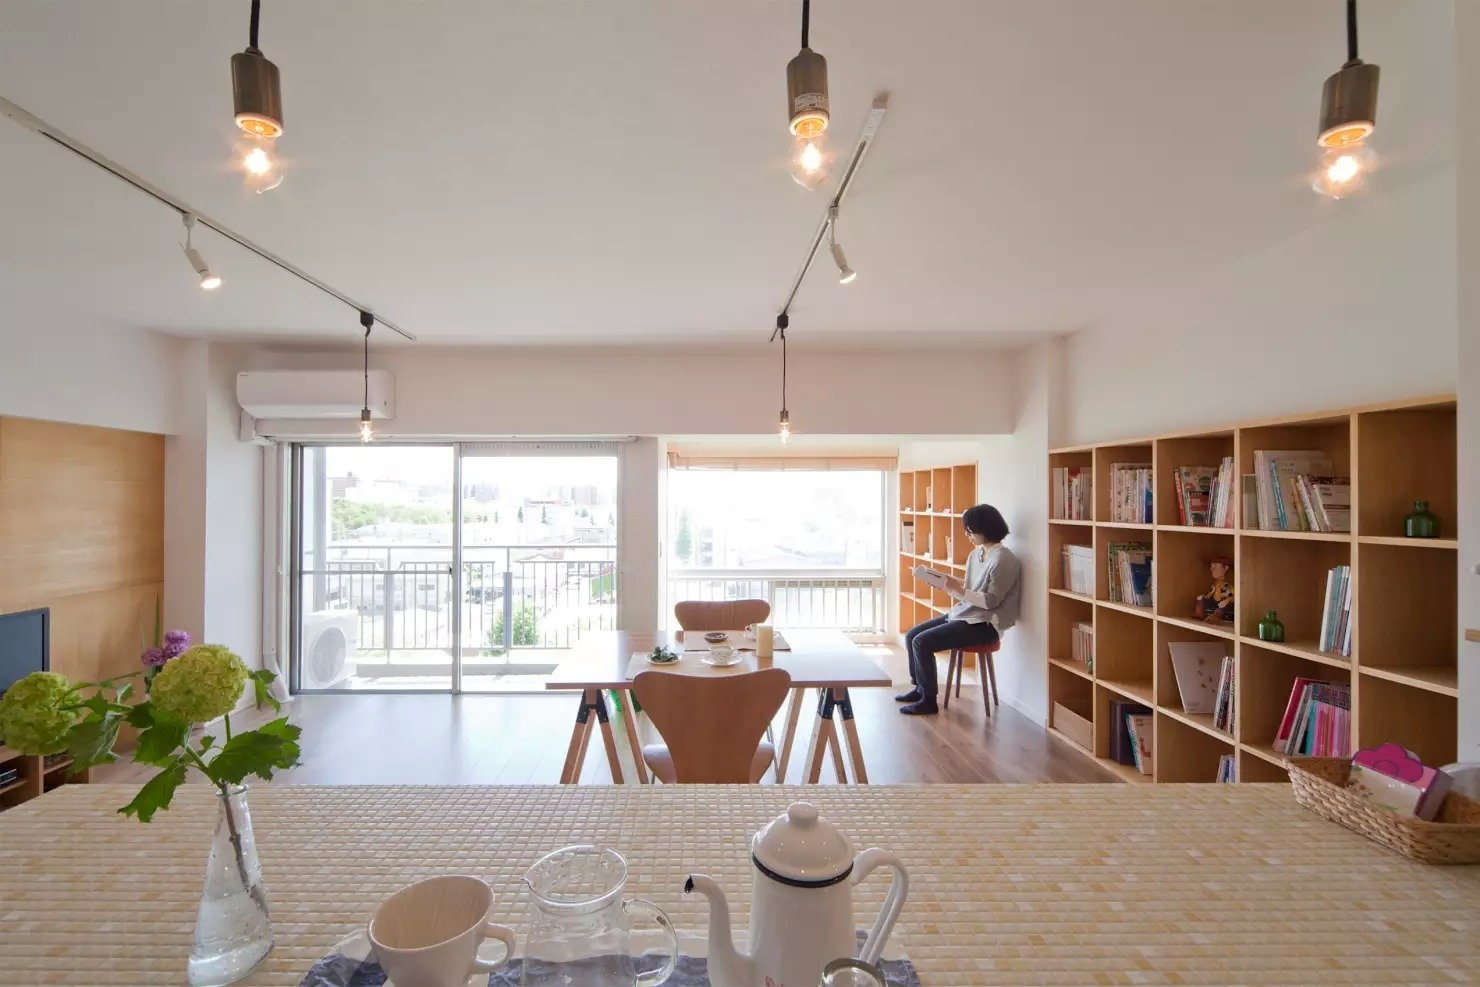 Book Cafe House by Leibal